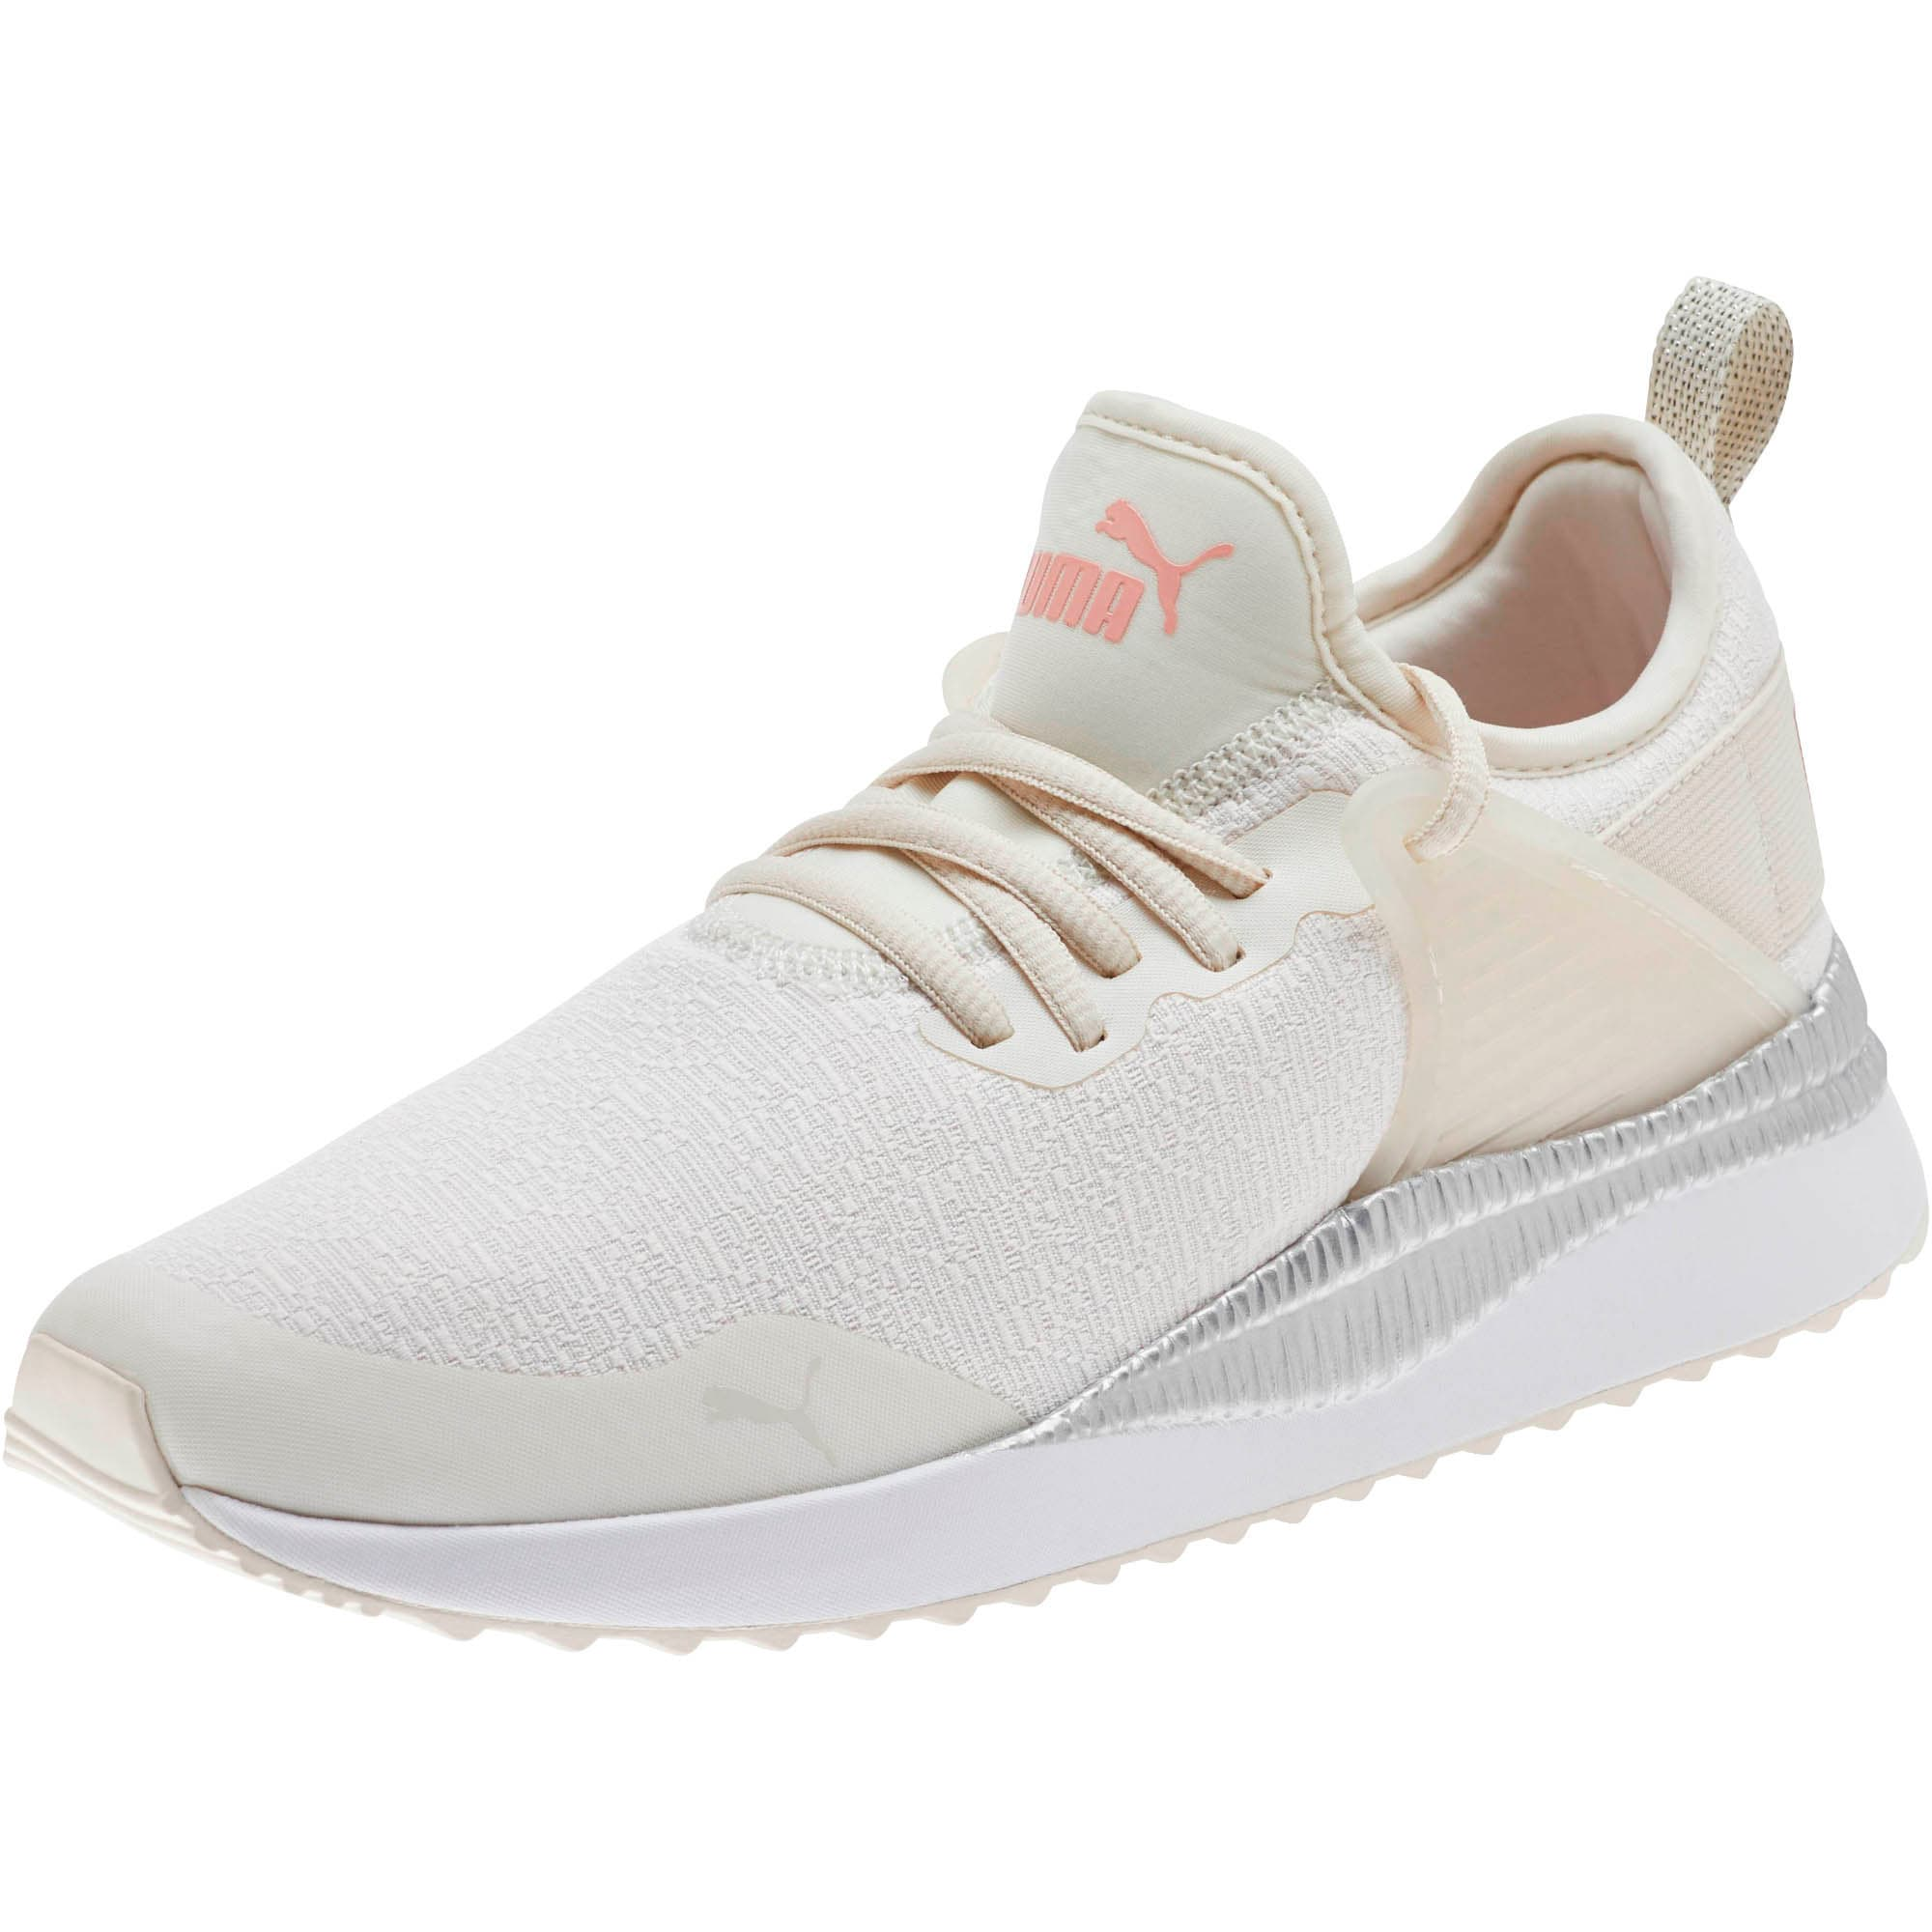 Thumbnail 1 of Pacer Next Cage Glitter Women's Sneakers, Pastel Parchment-Bridal Rose, medium